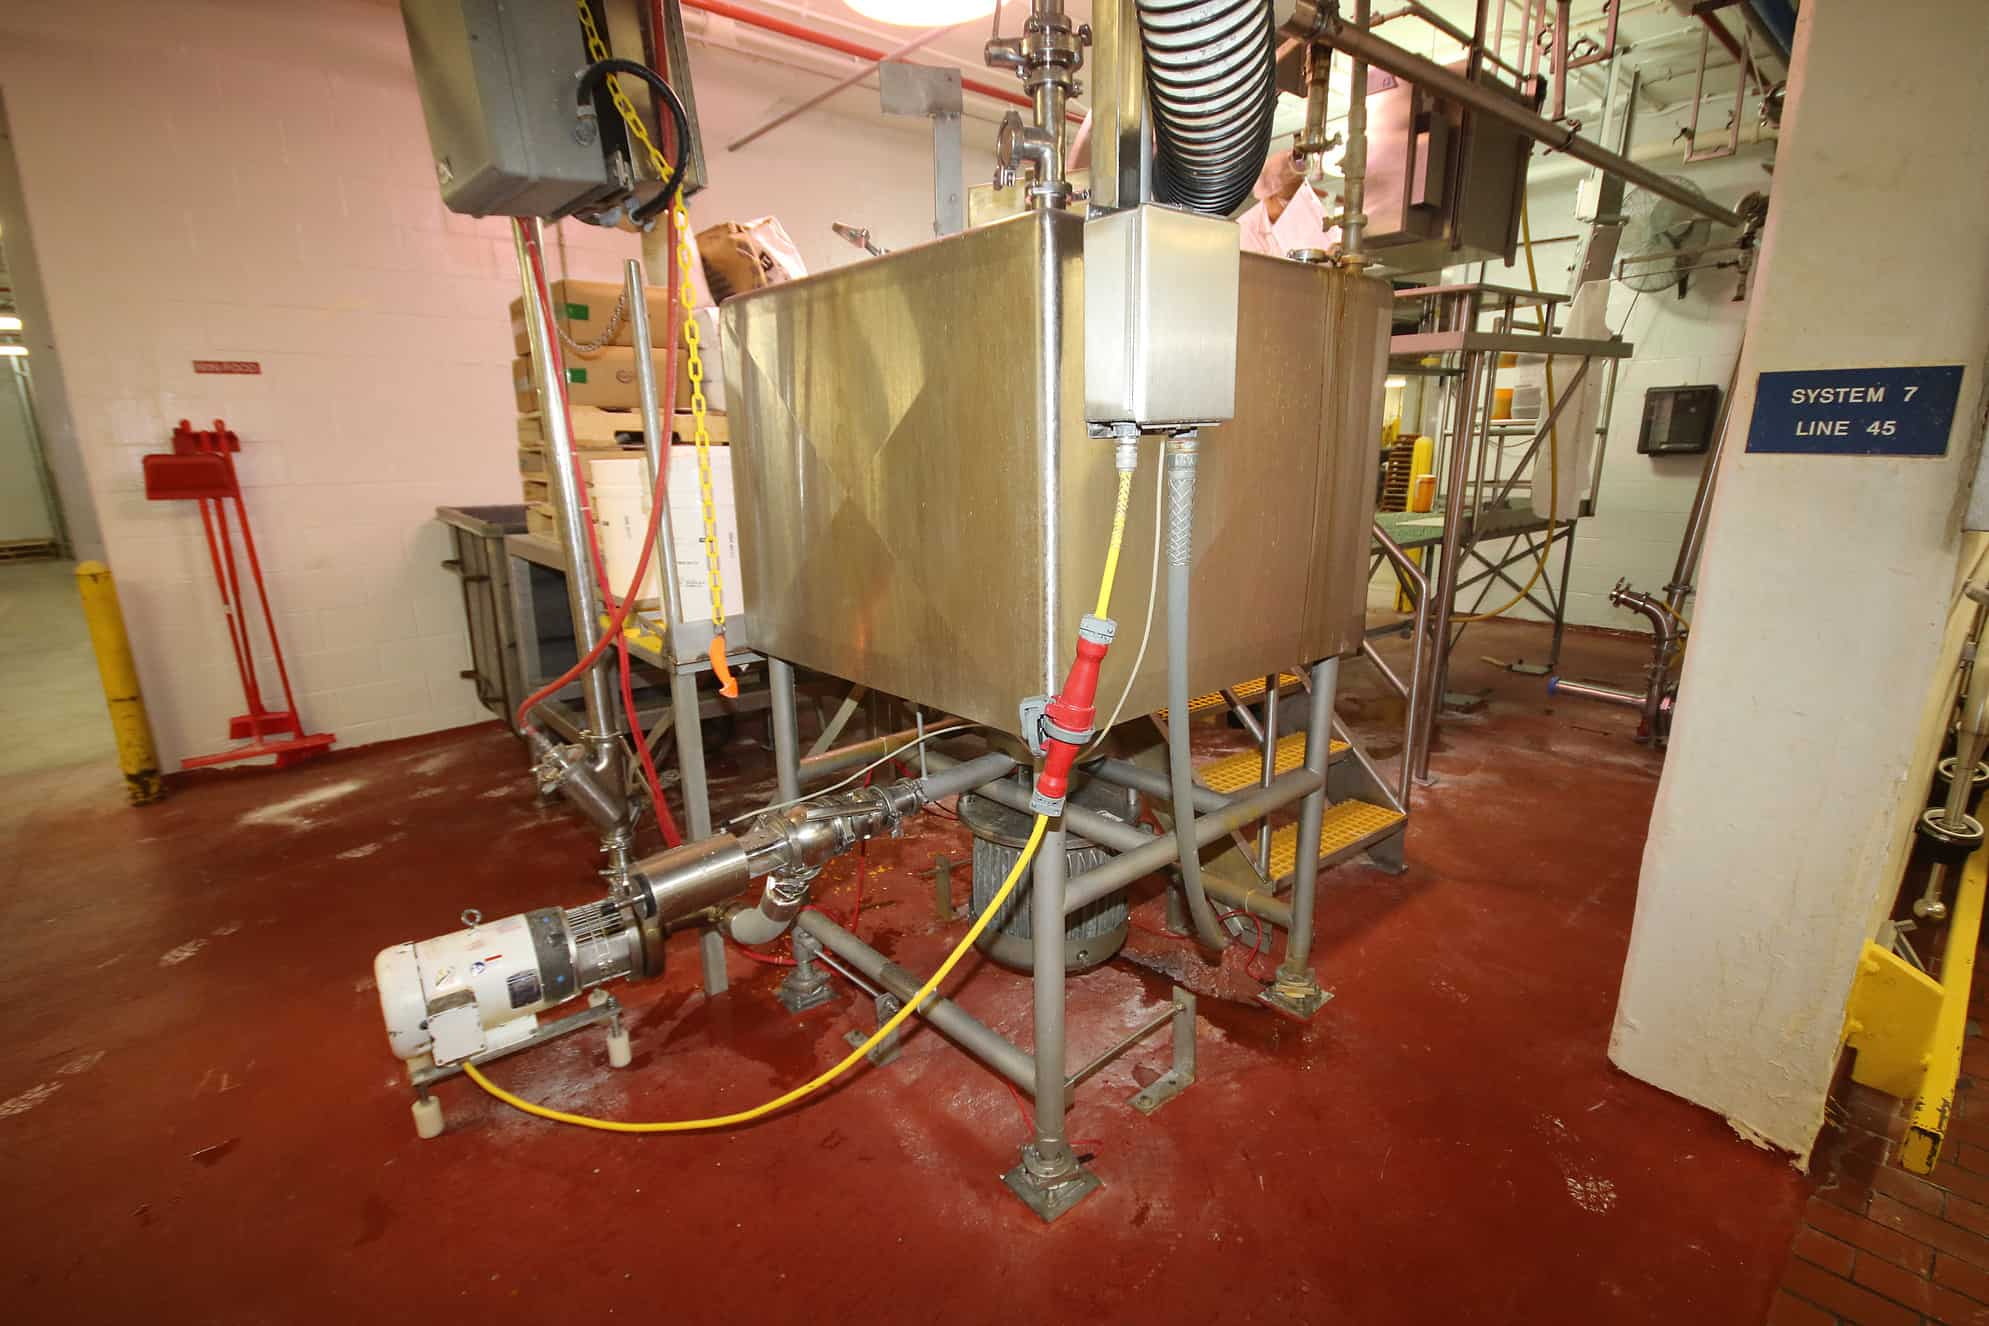 (5) IWS BLENDING SYSTEMS